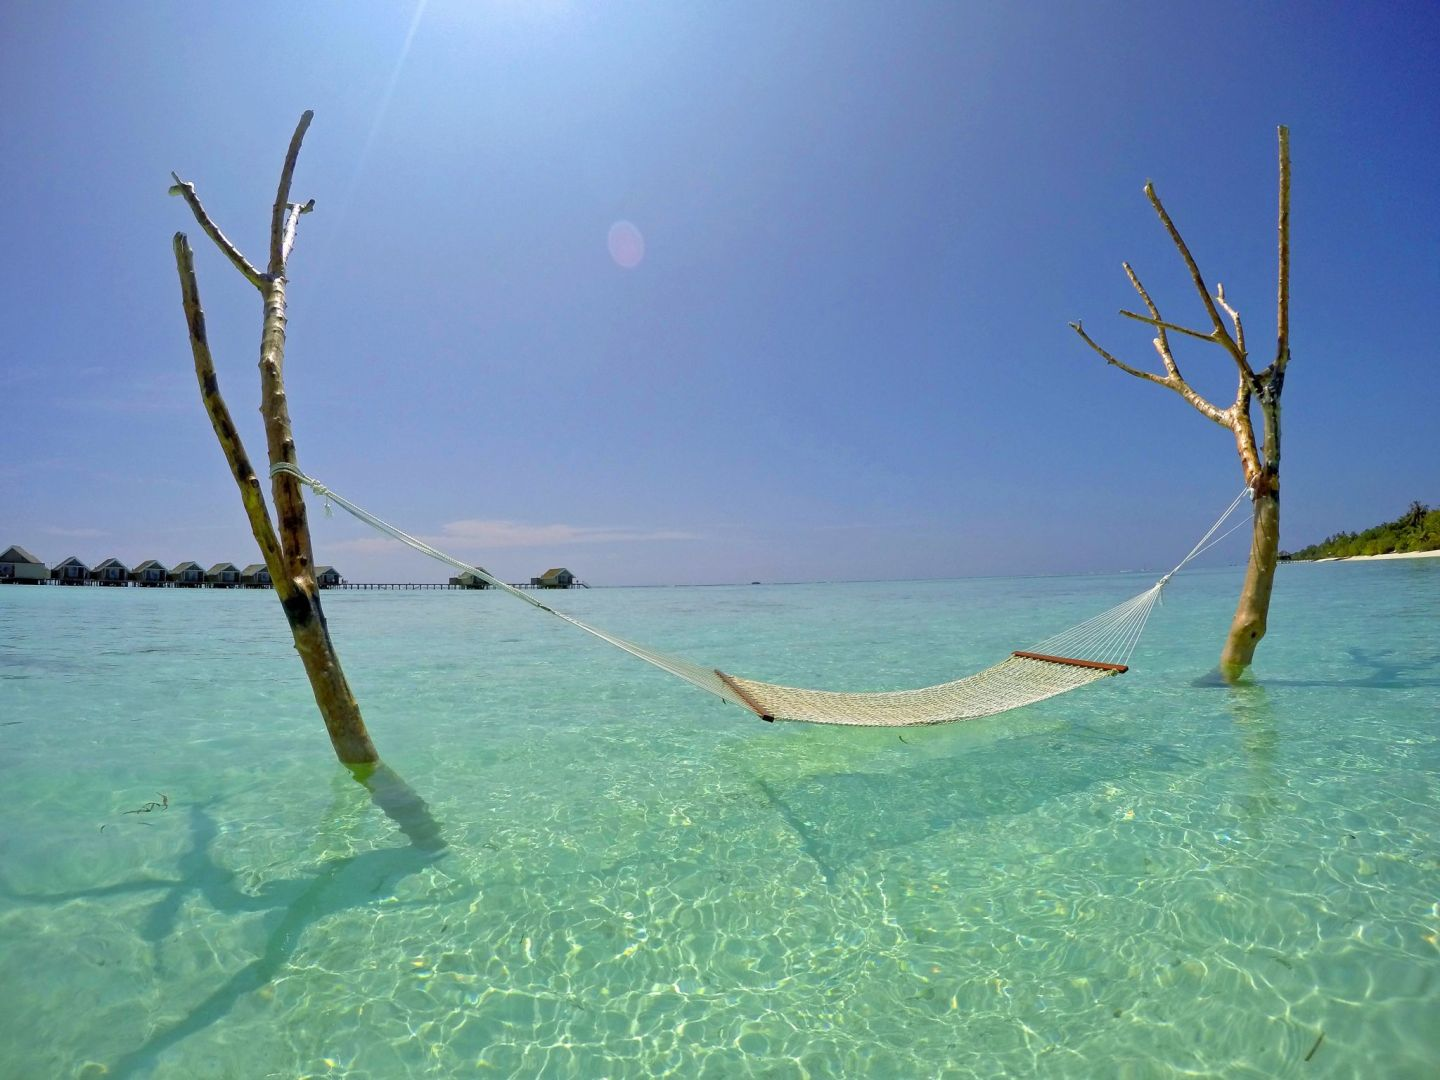 Hammock in water at LUX Maldives